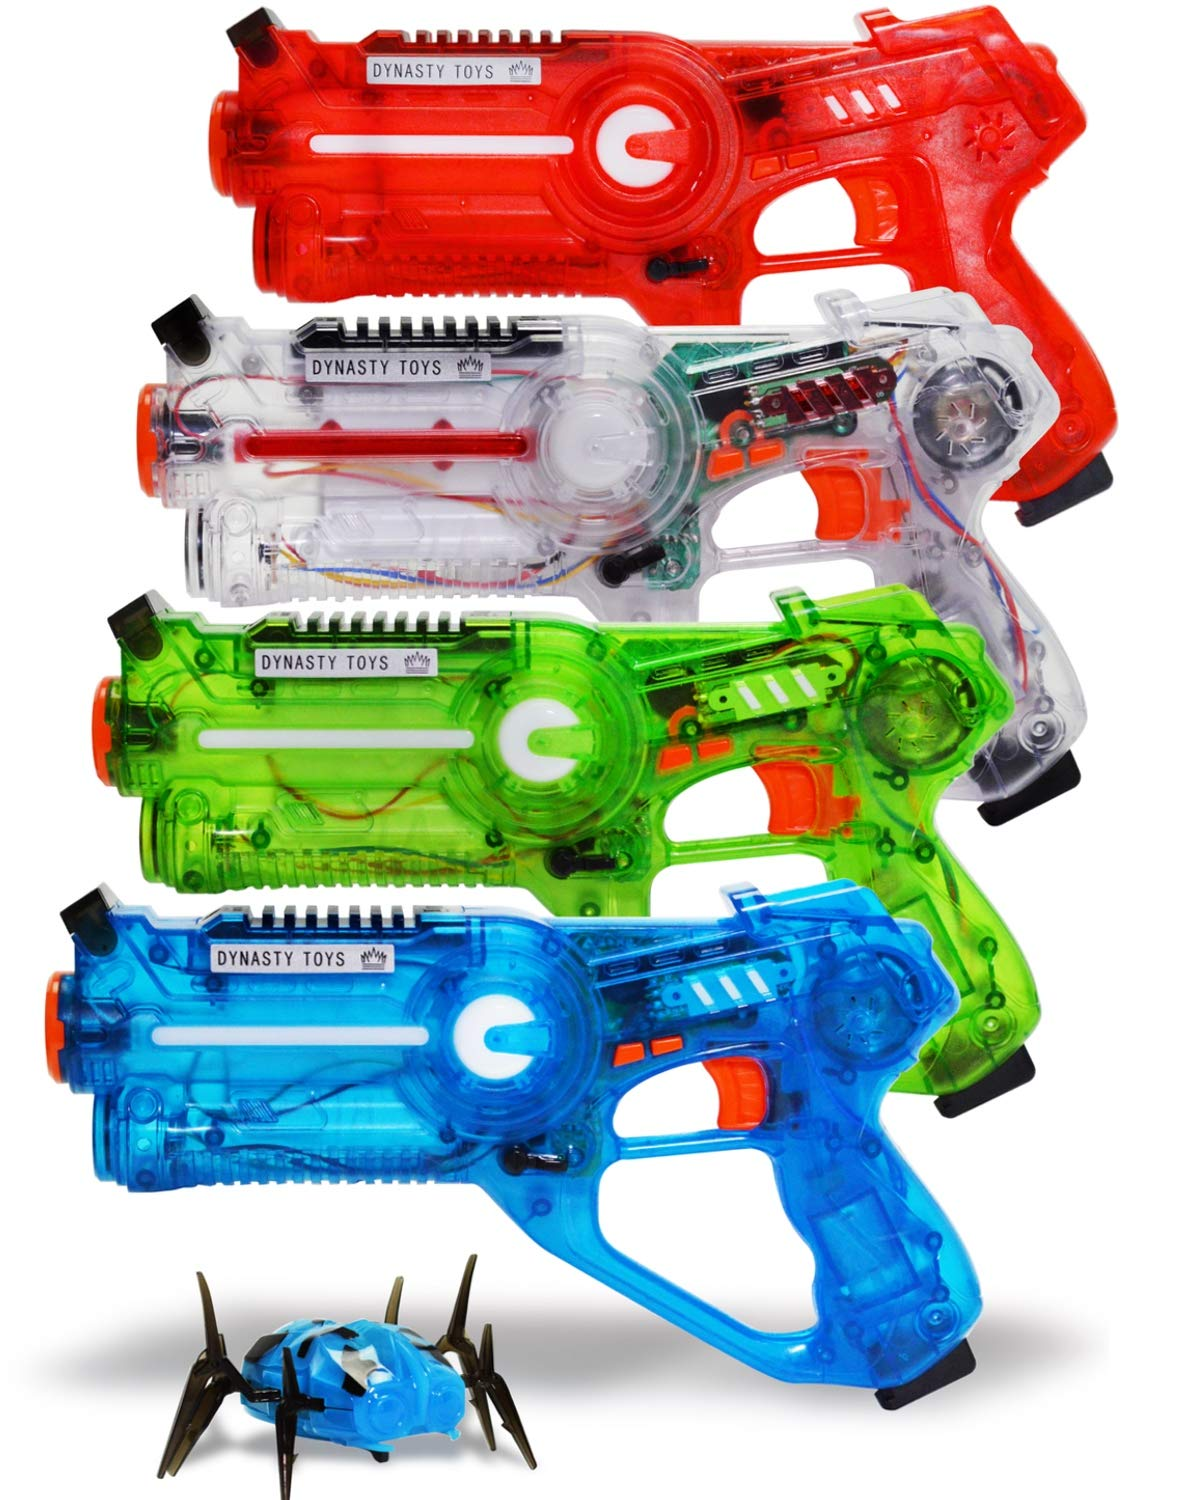 DYNASTY TOYS Family Laser Tag Set - 4 Laser Tag Blasters and 1 Target Robot Bug - Transparent Special Edition Blasters by DYNASTY TOYS